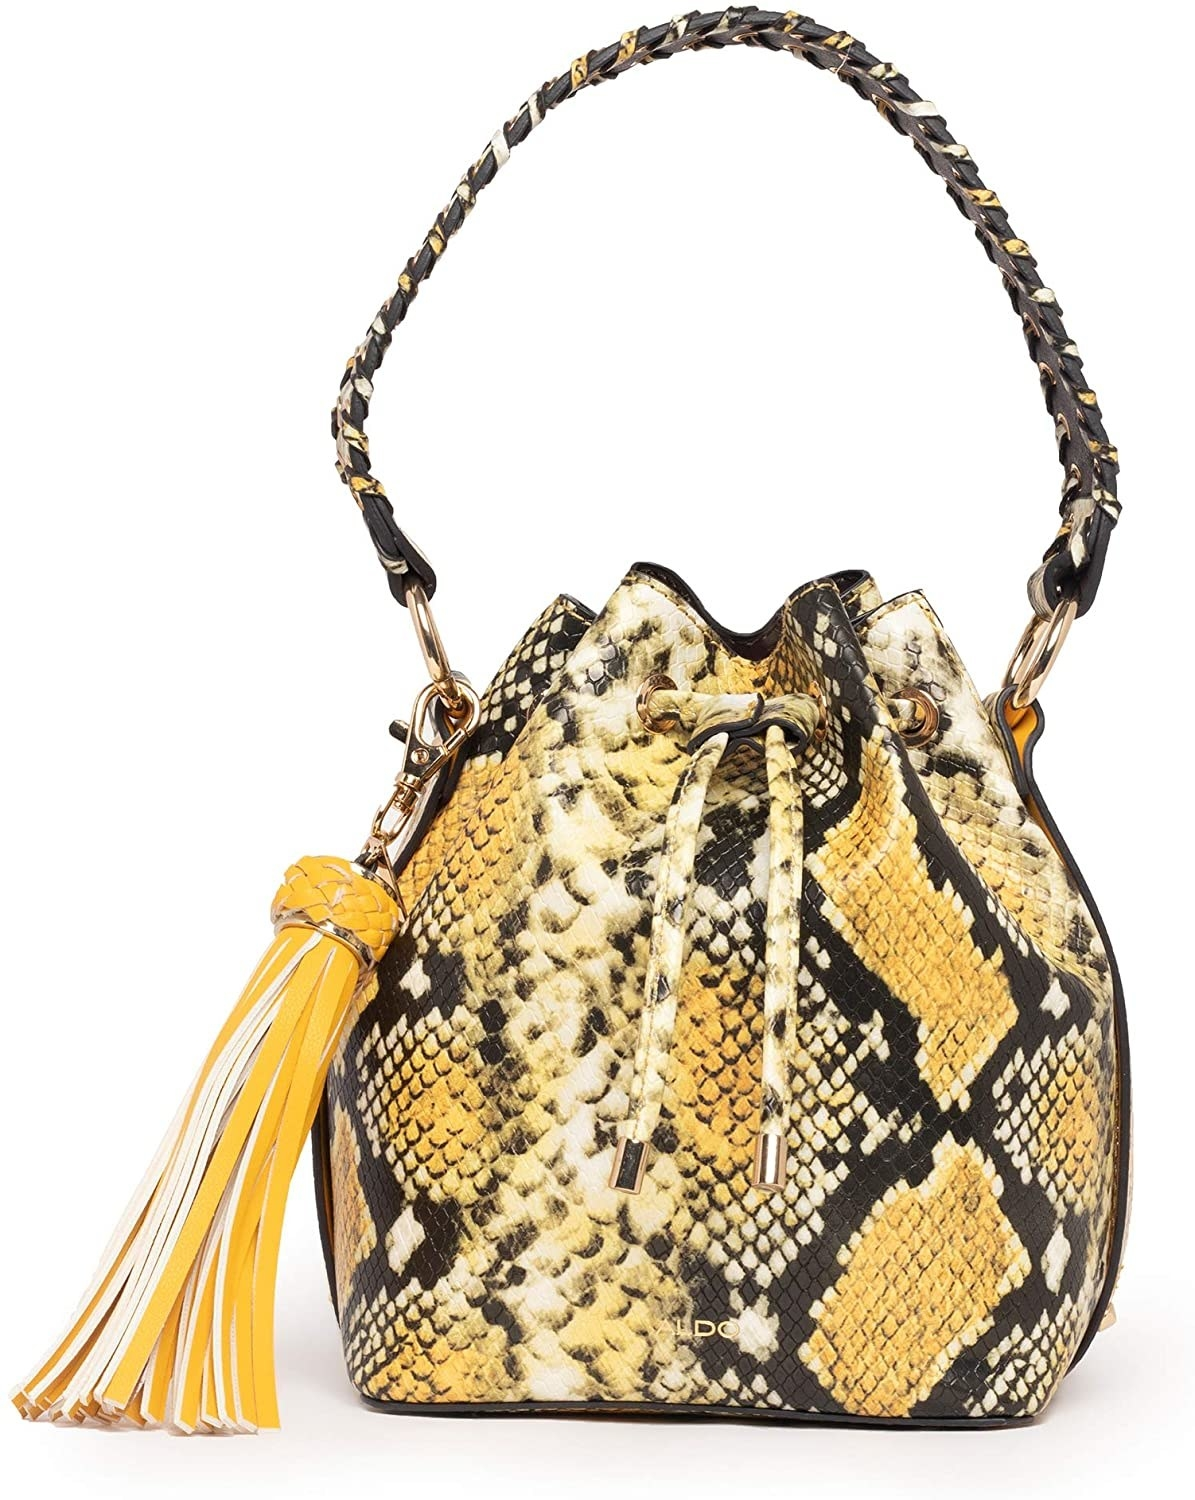 The yellow snake faux snakeskin bag with an oversized tassel charm